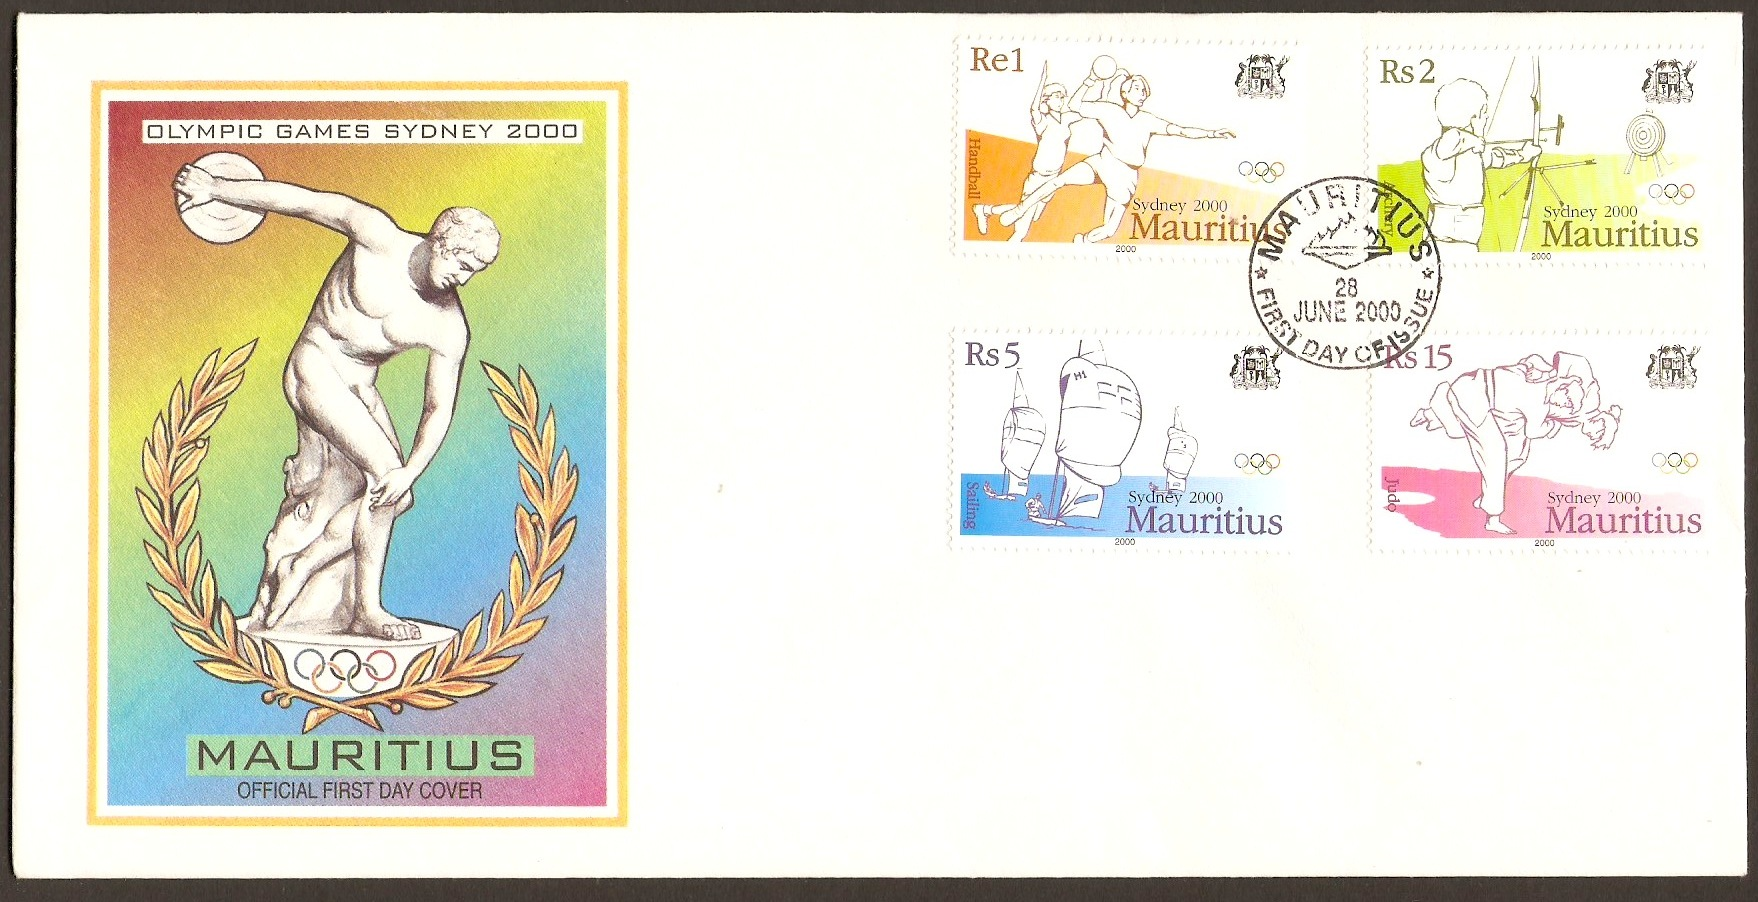 Mauritius 2000 Olympic Games Series FDC.